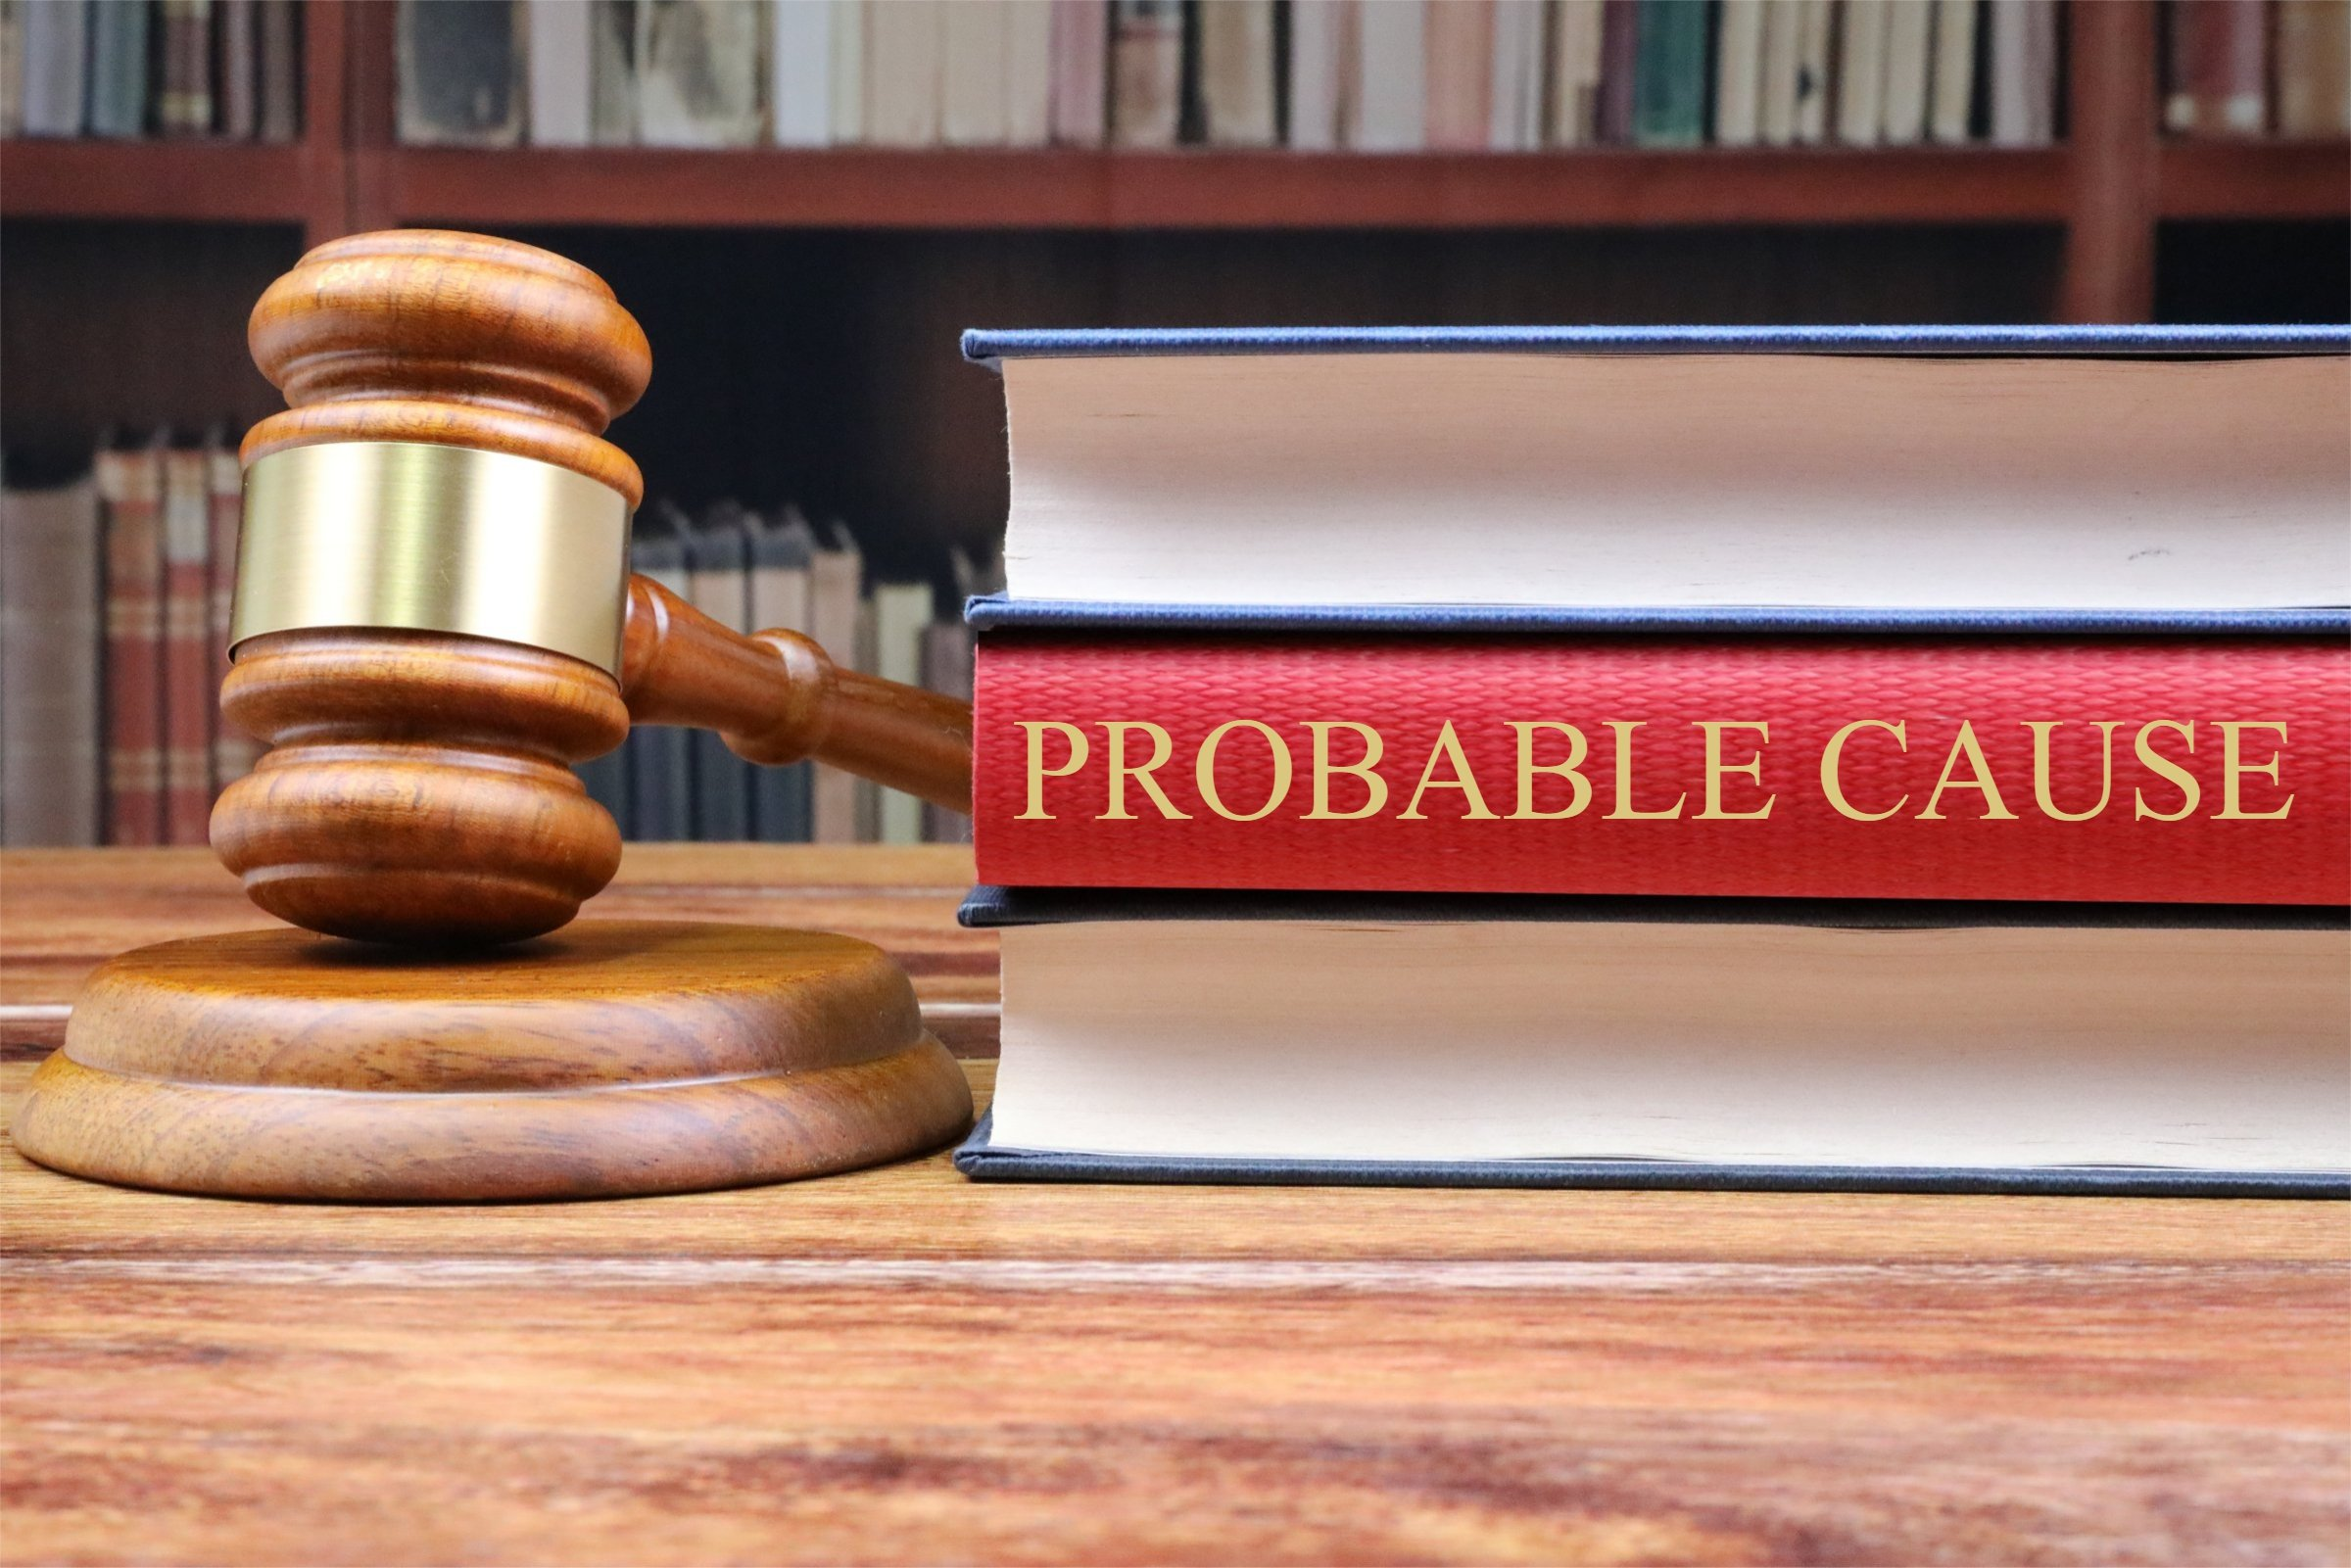 Probable Cause